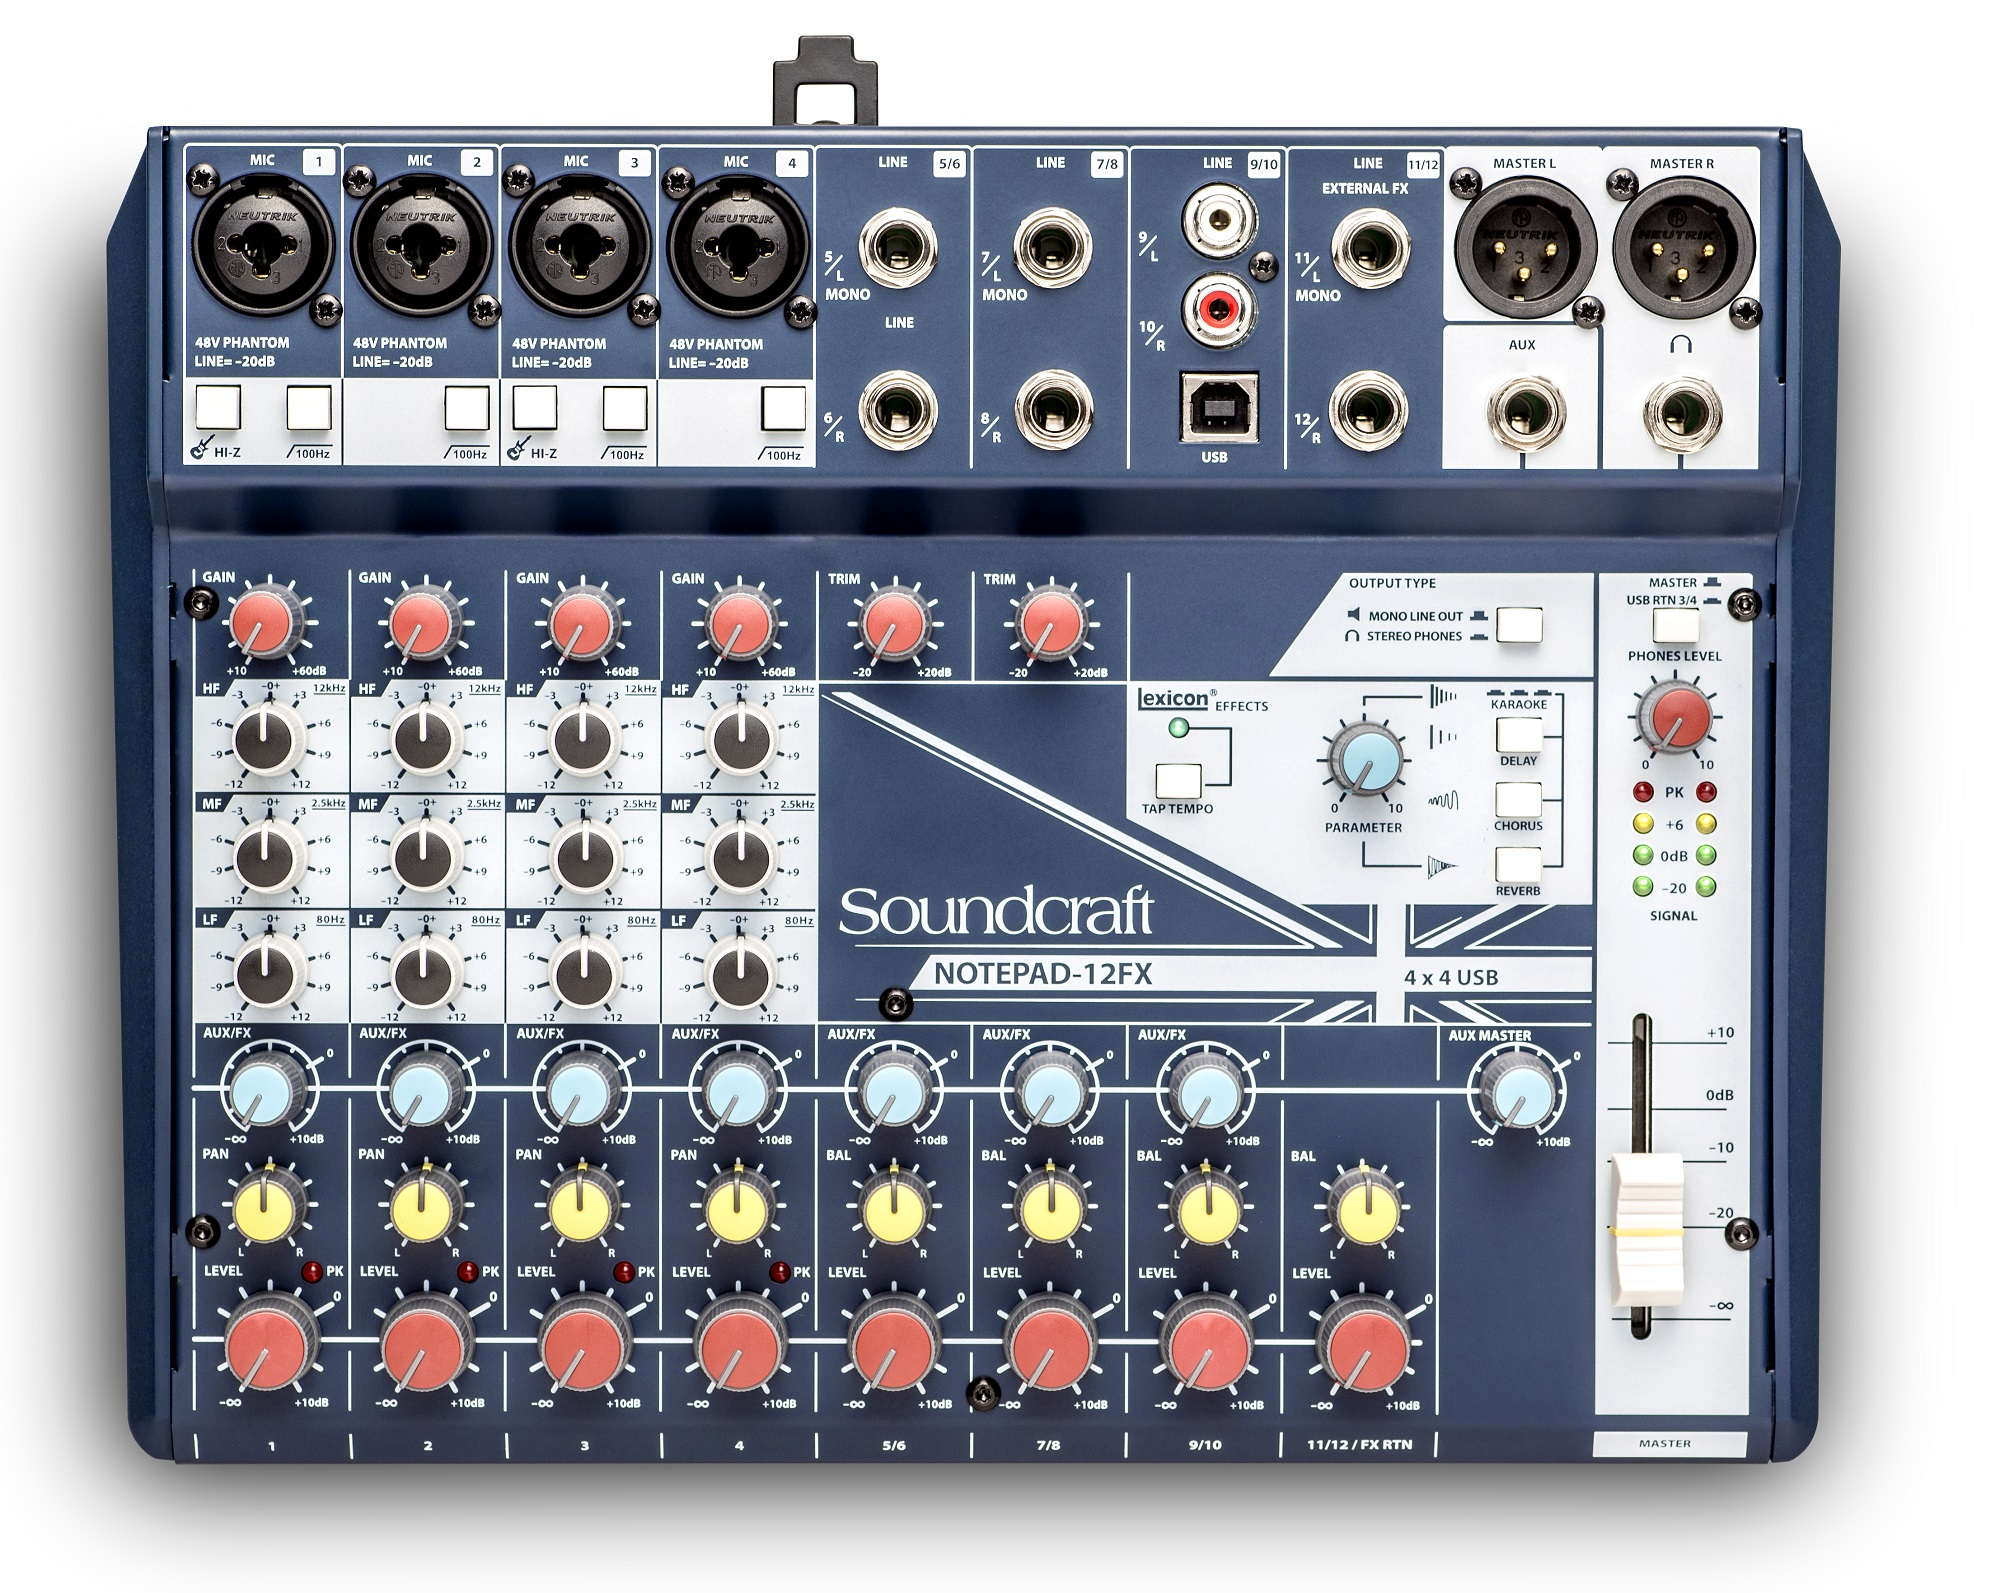 Mixer Soundcraft Notepad-12FX | Anh Duy Audio